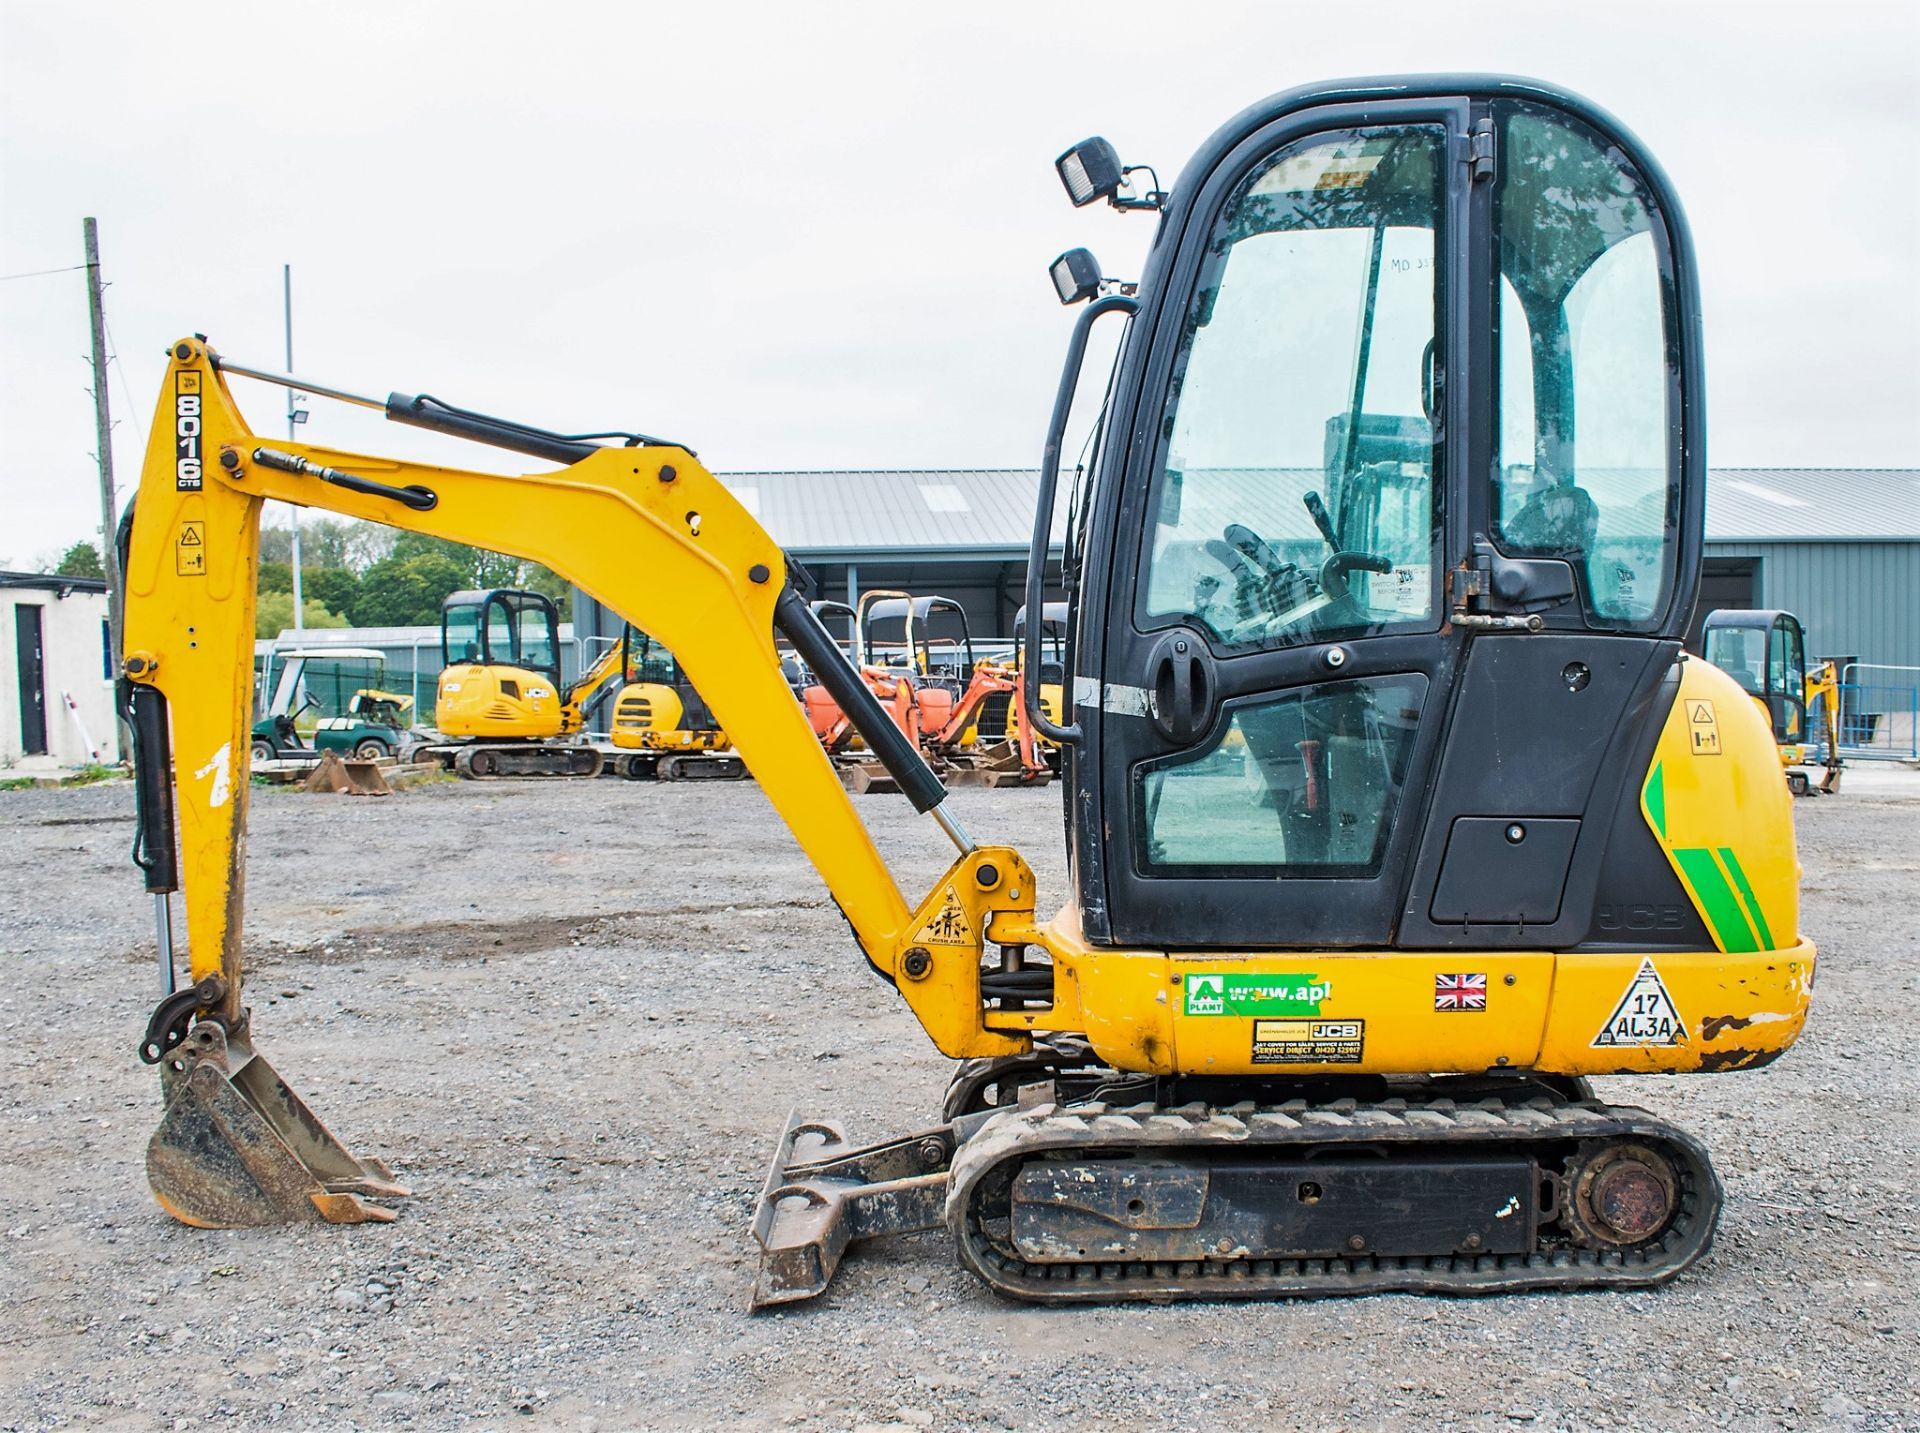 JCB 8016 1.6 tonne rubber tracked excavator  Year: 2015 S/N: 1733 Recorded Hours: 1861 A669405 - Image 8 of 20